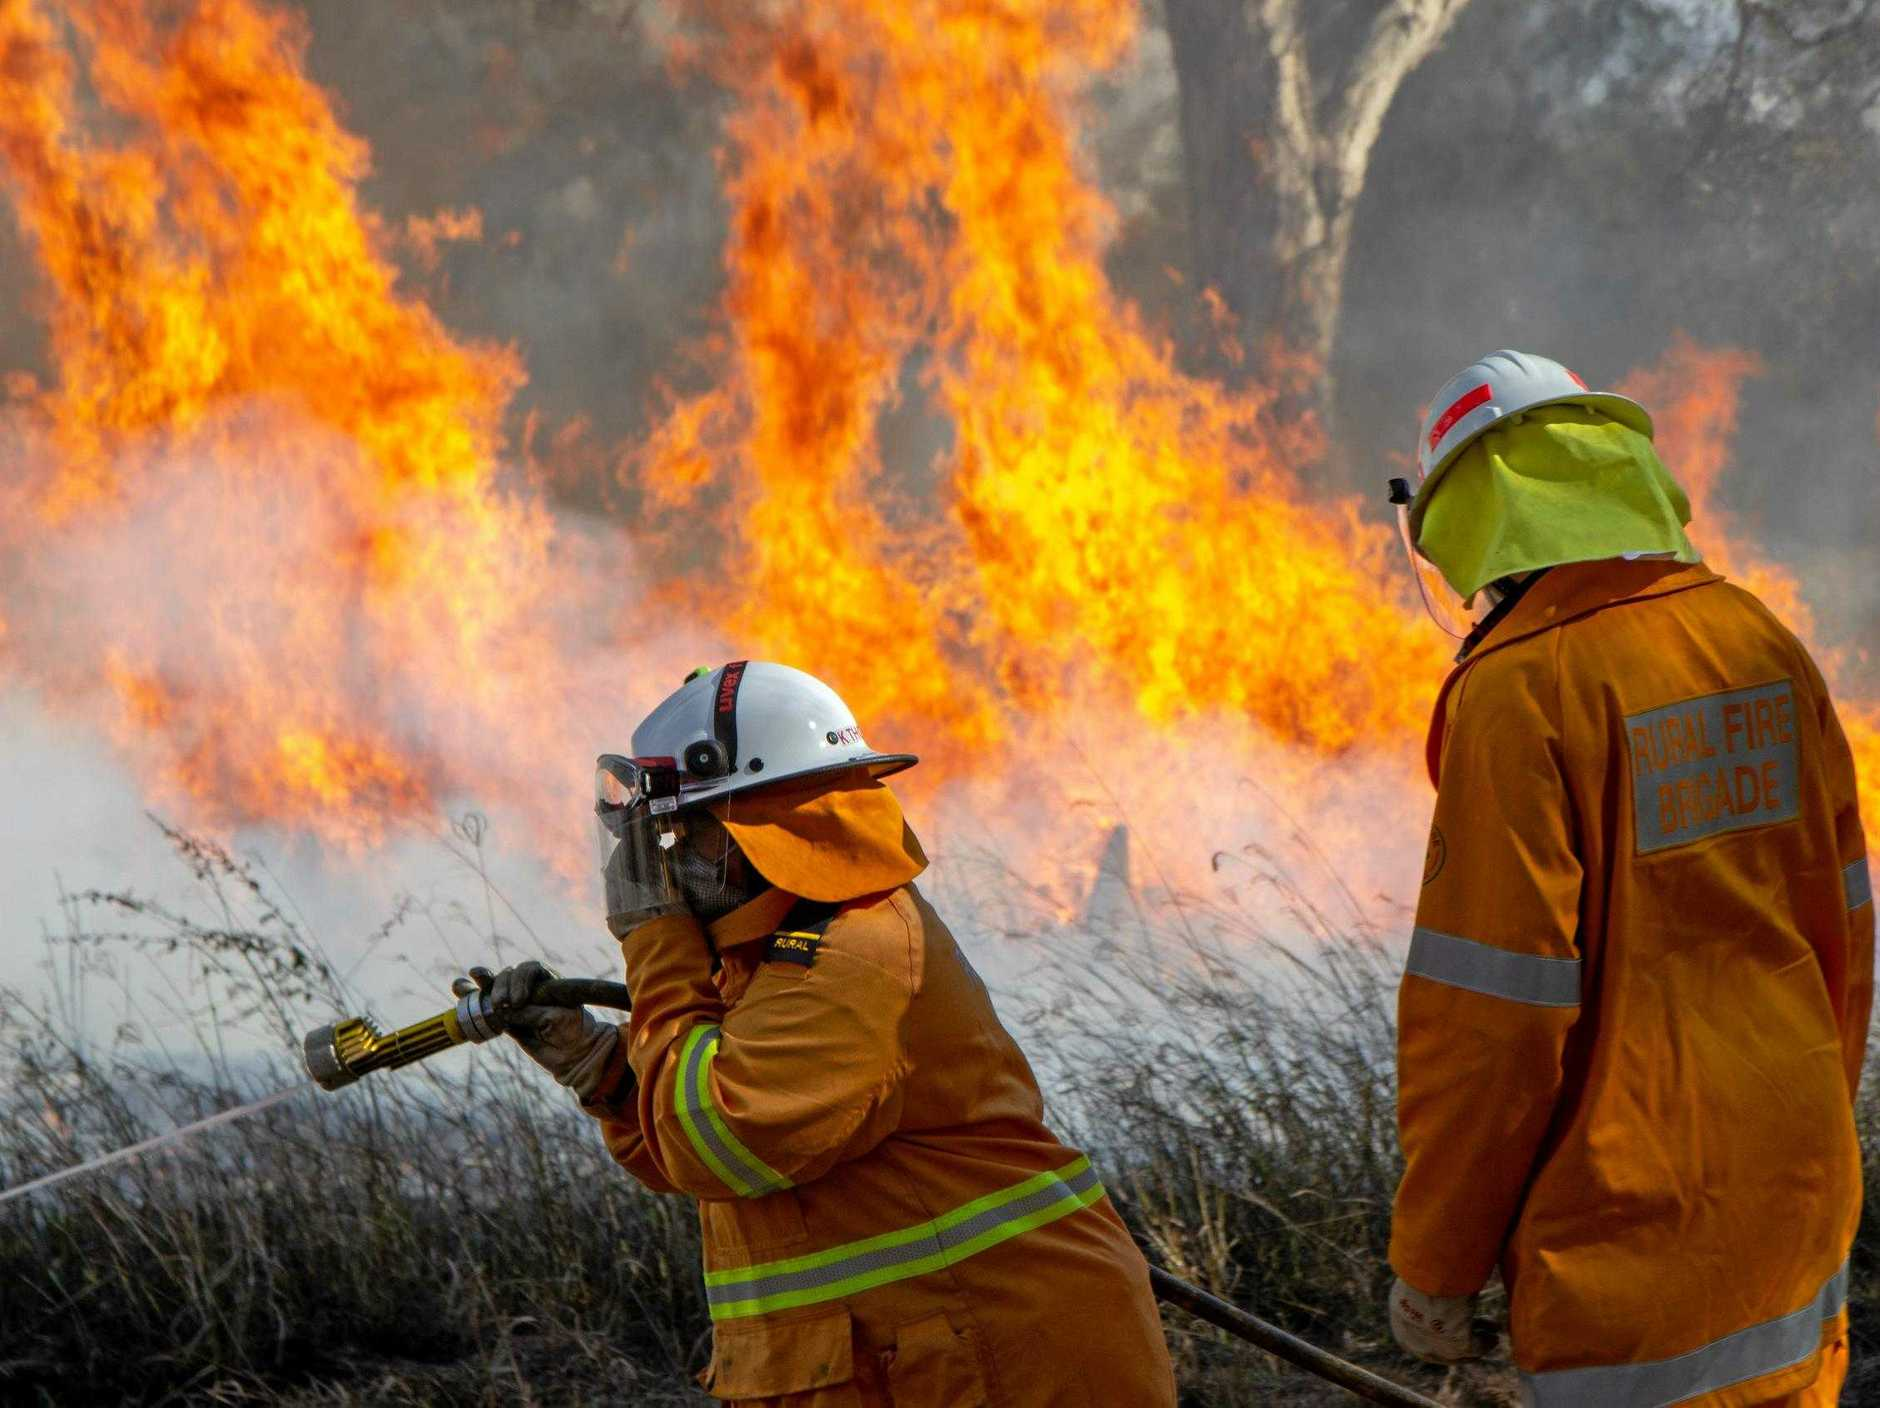 STAY ALERT: Fire fighters are warning residents need to keep up to date and decide what actions they will take if the situation changes.